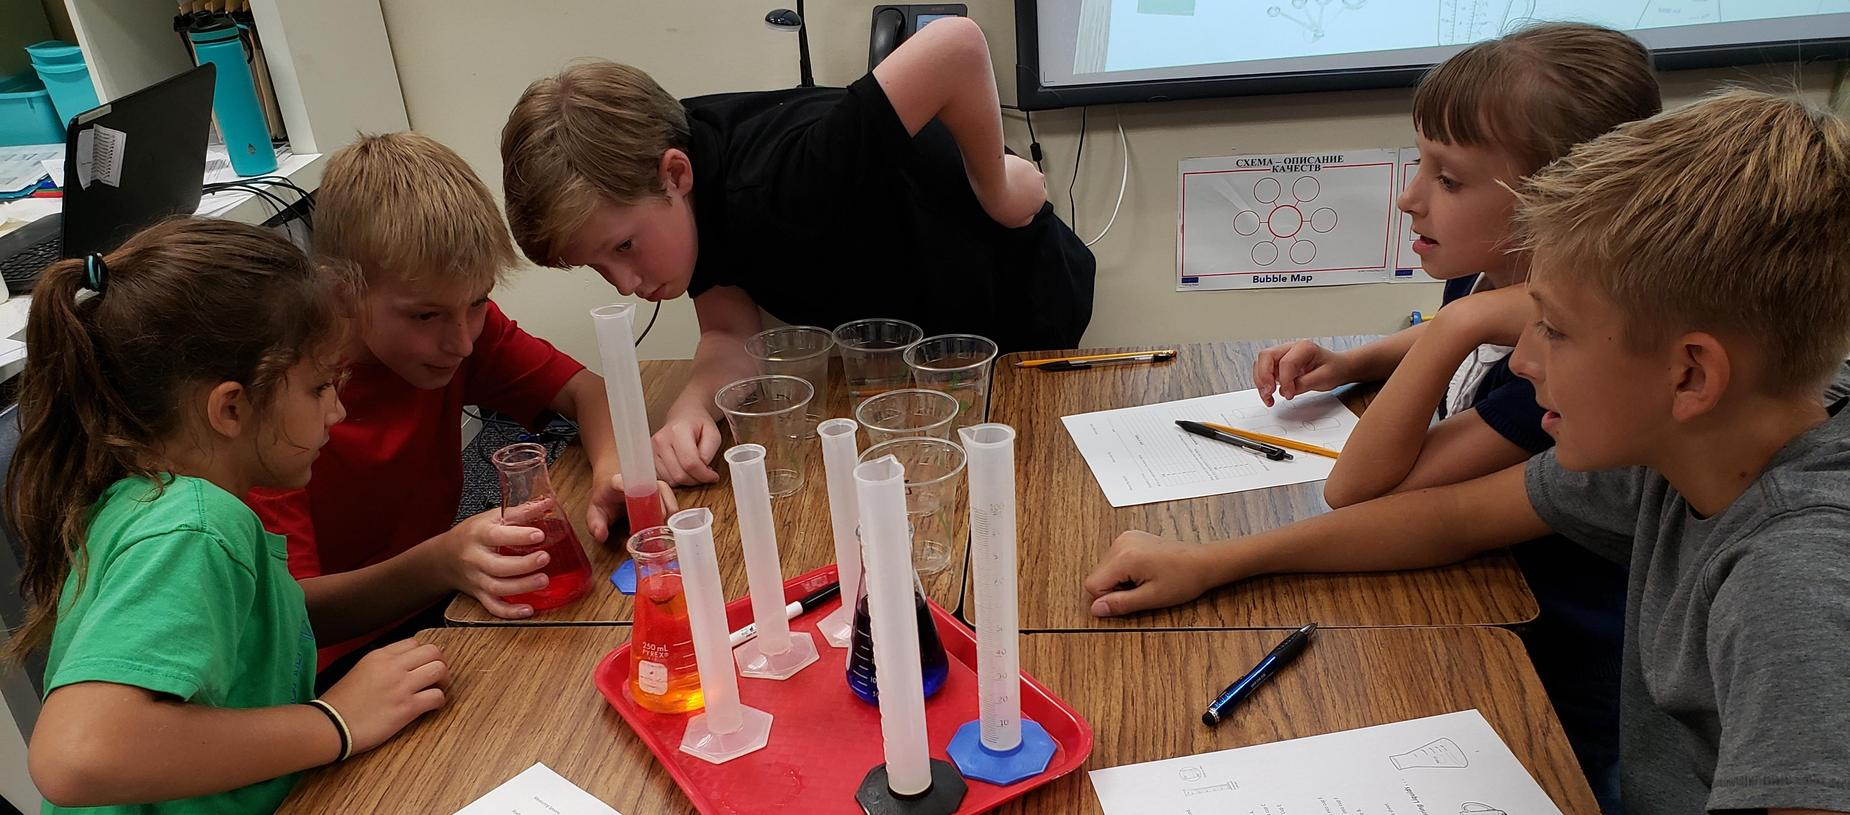 science classStudents Performing Science Experiment in Class